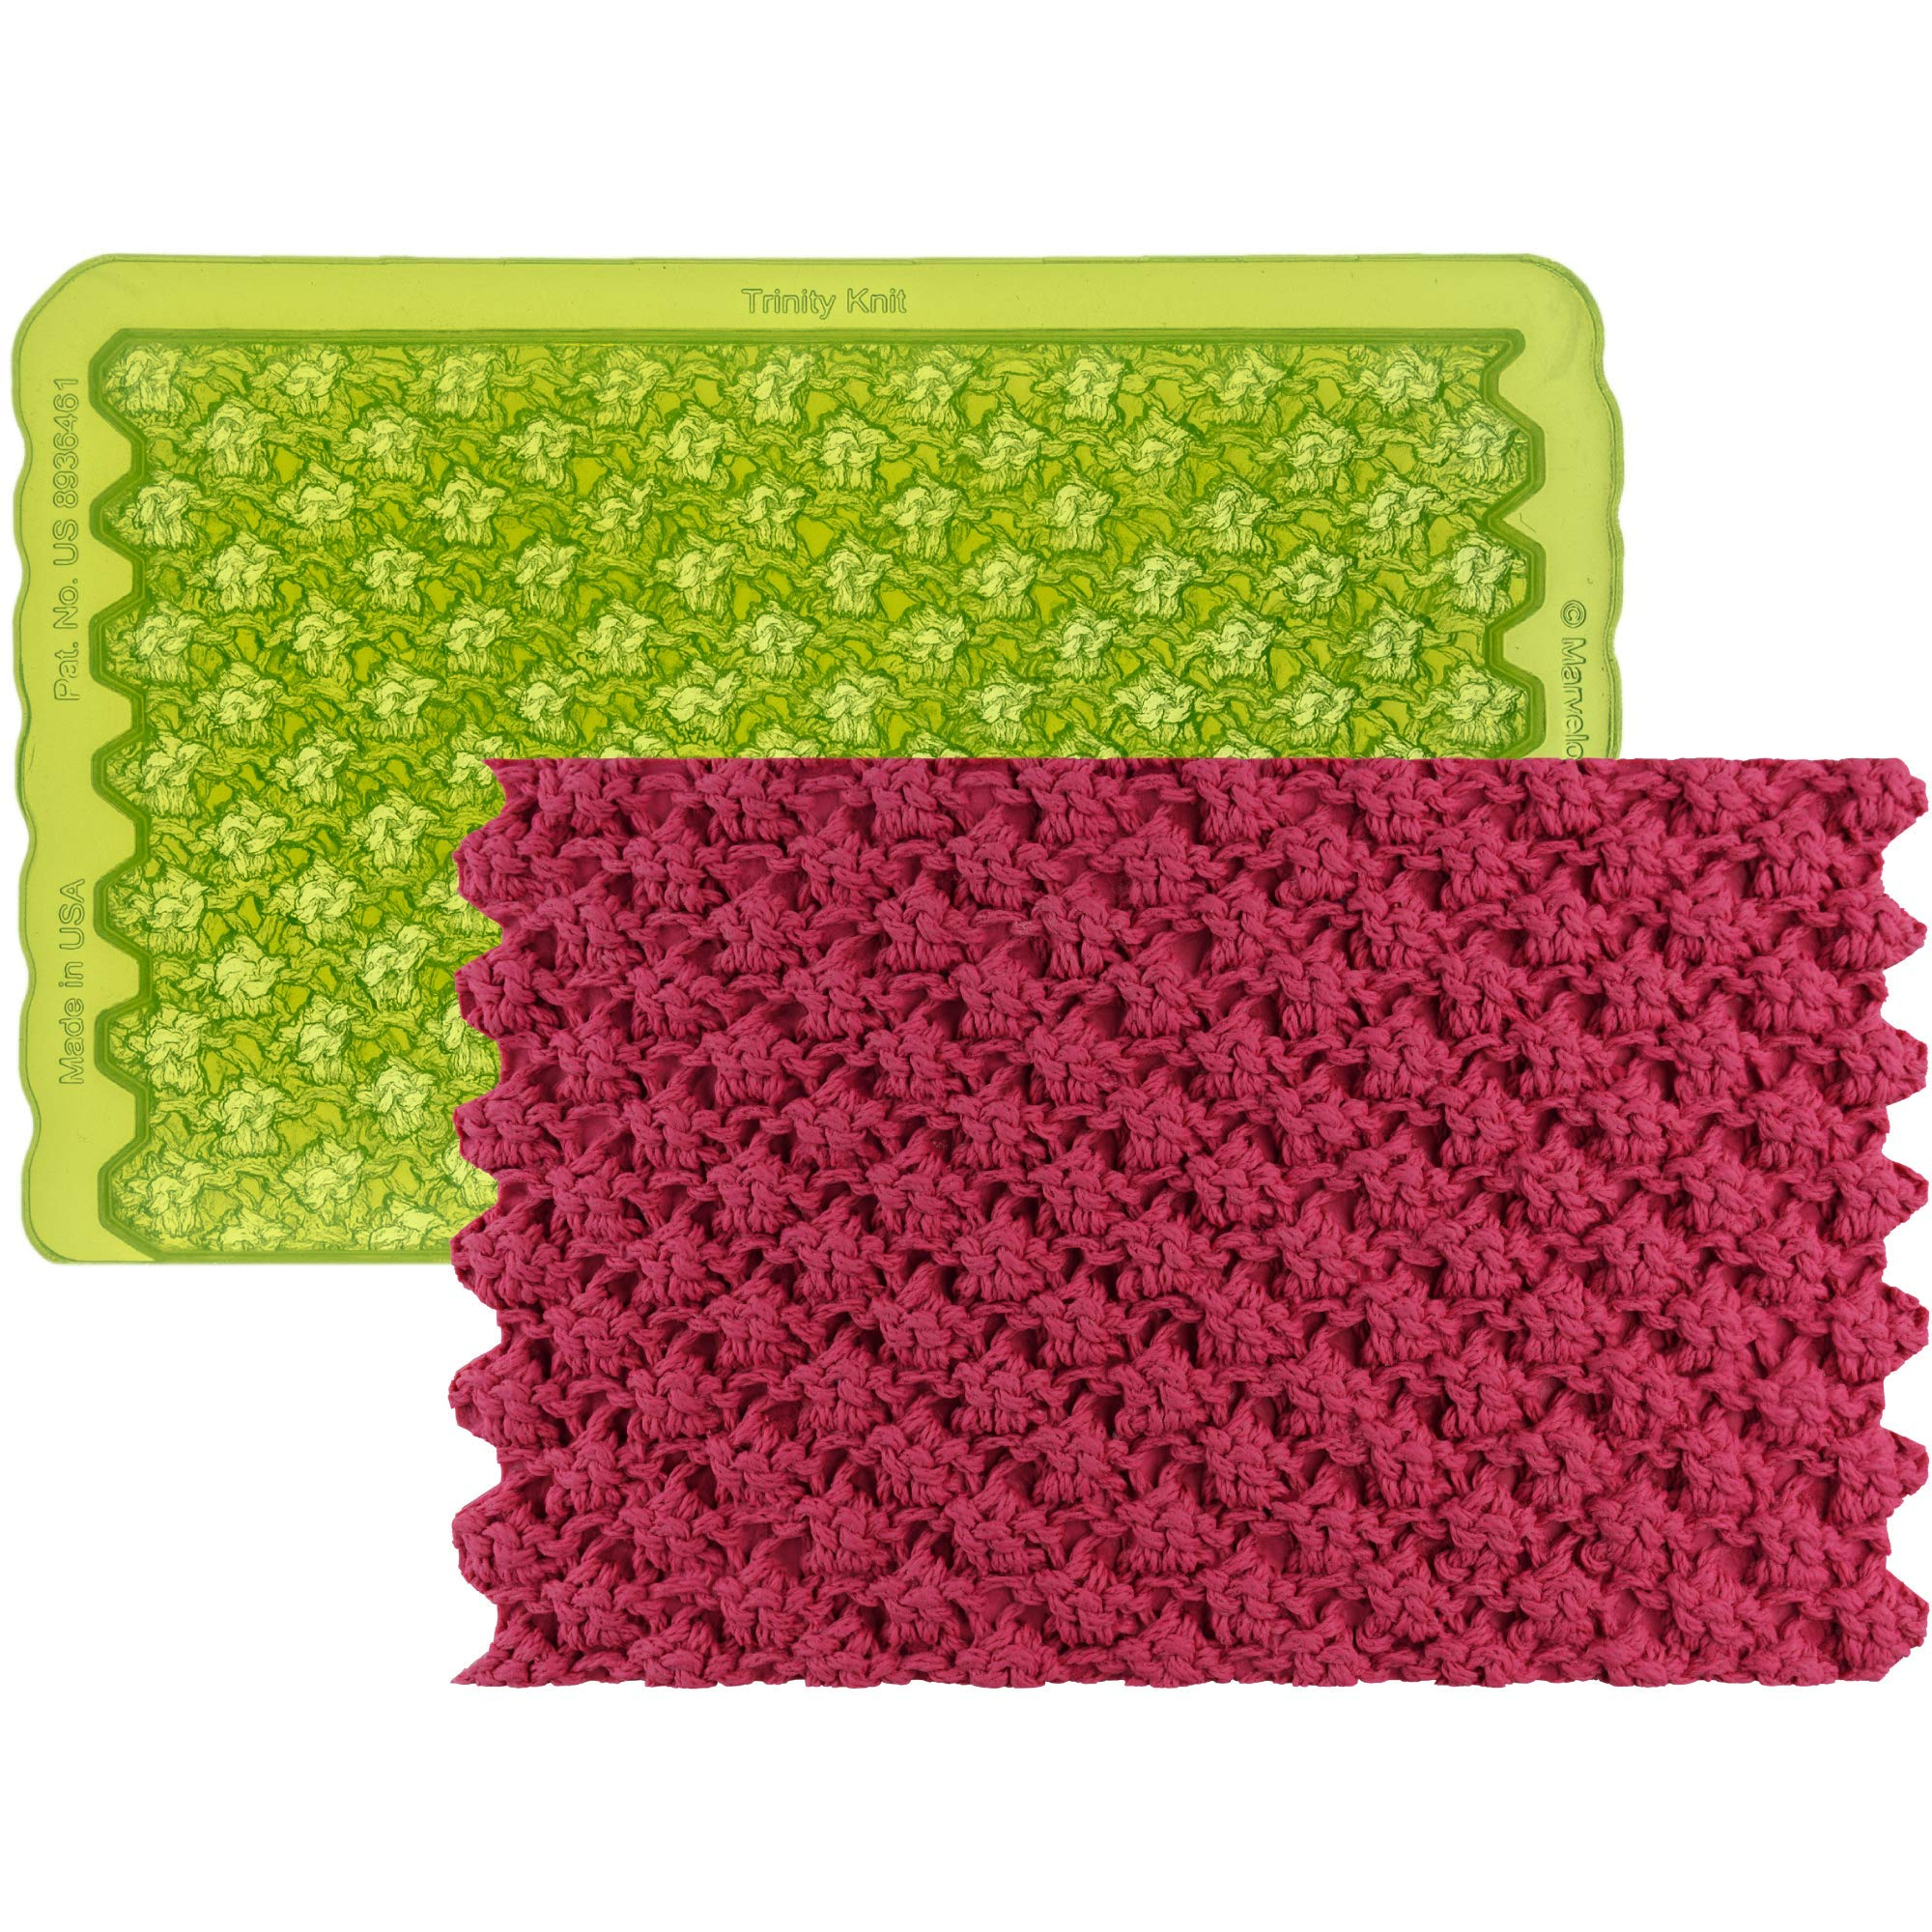 Marvelous Molds Trinity Knit Simpress Silicone Mold | Cake Decorating | Fondant and Gumpaste Icing